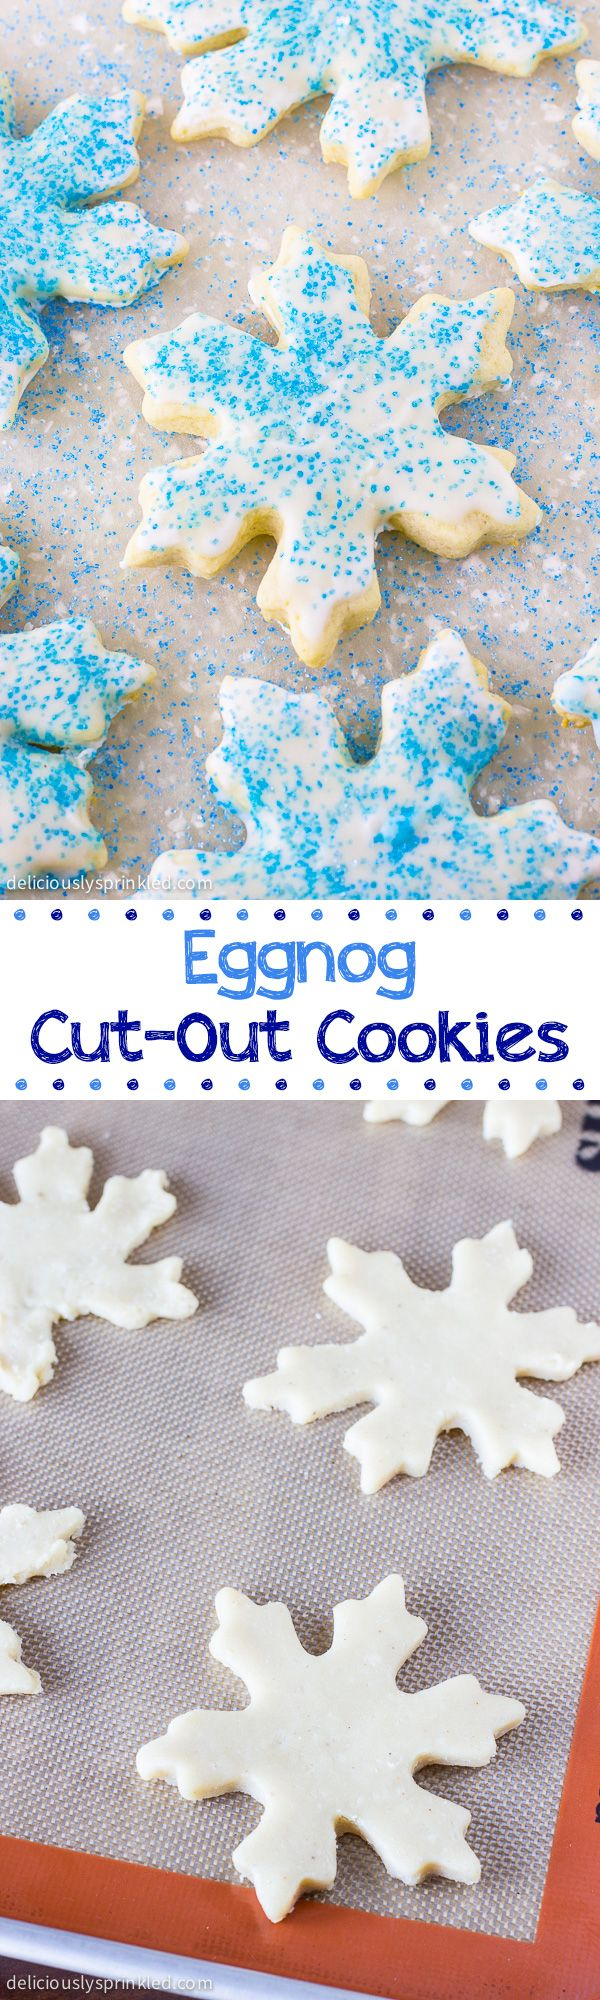 Eggnog-Cut-Out-Cookies- a Christmas cookie favorite at our house!